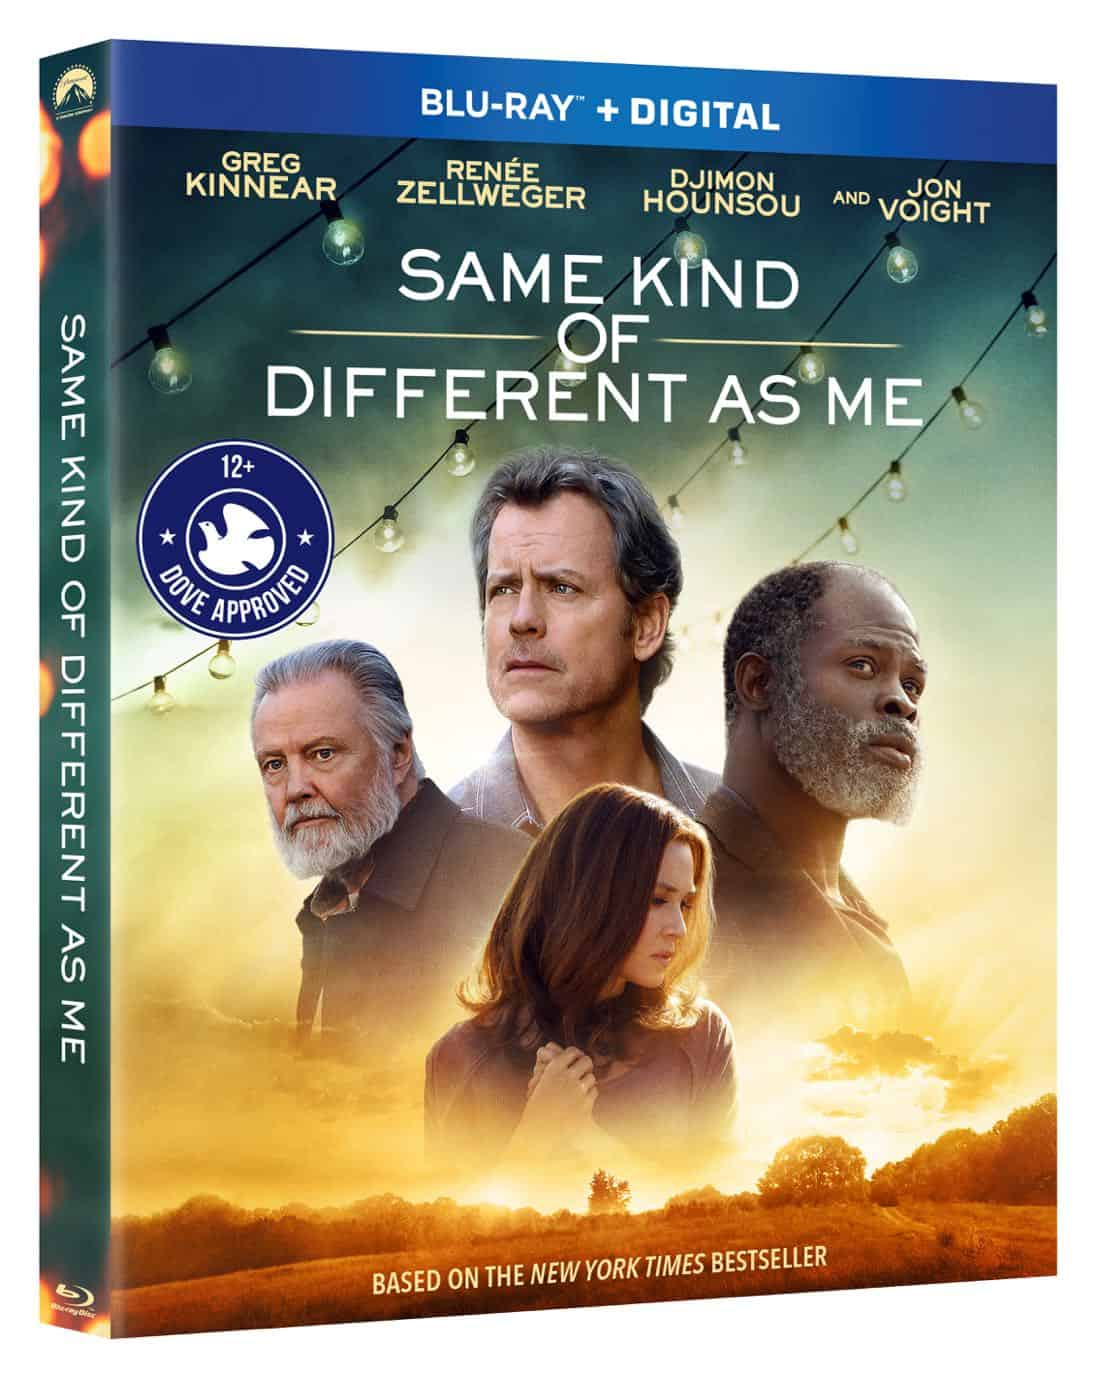 Same-Kind-of-Different-As-Me-Box-art-Blu-ray